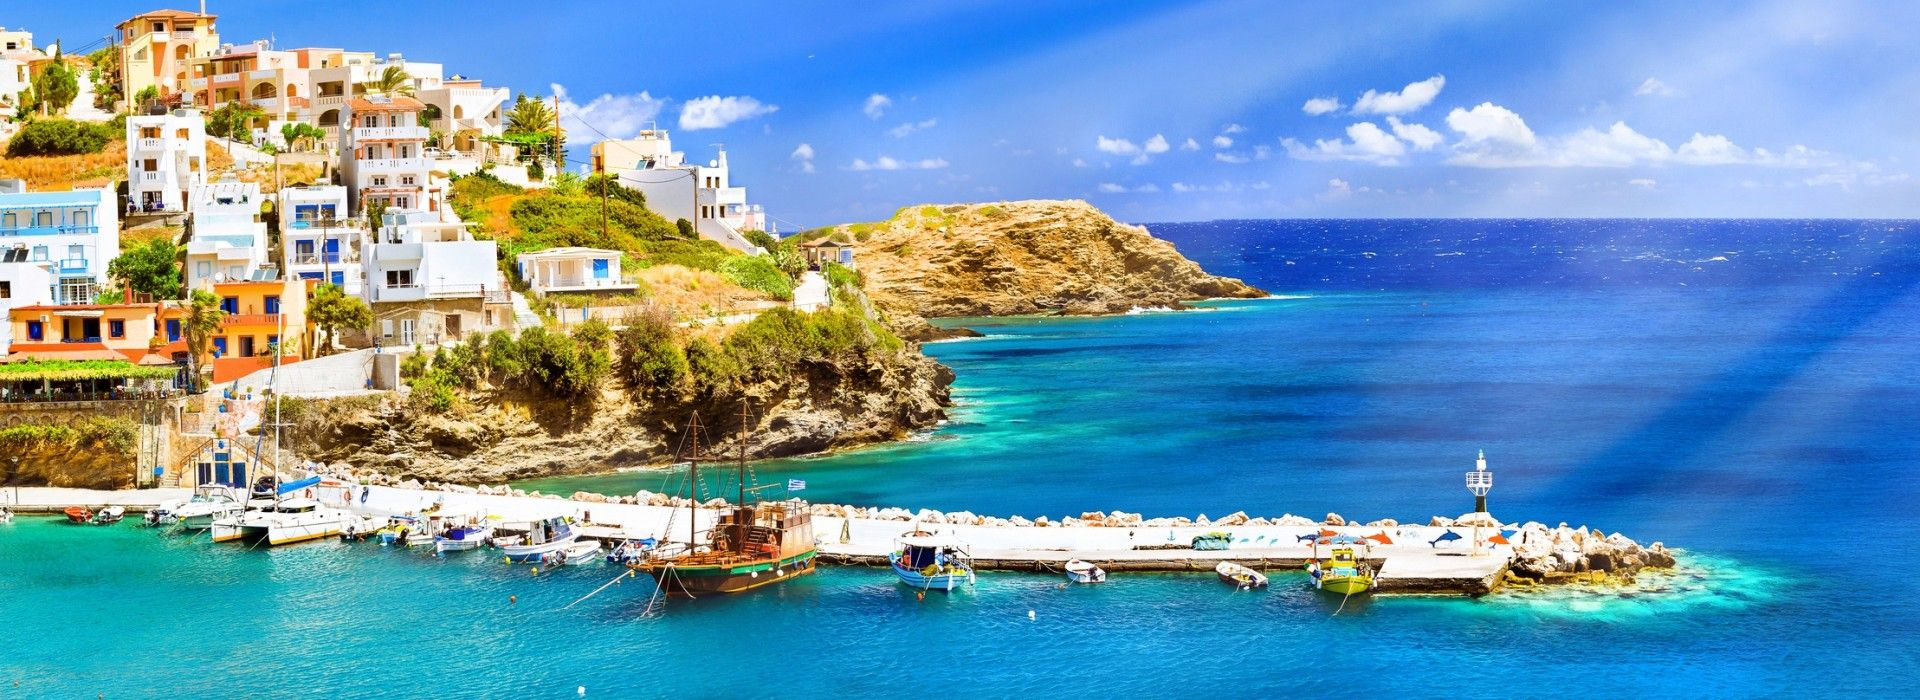 City sightseeing Tours in Greece